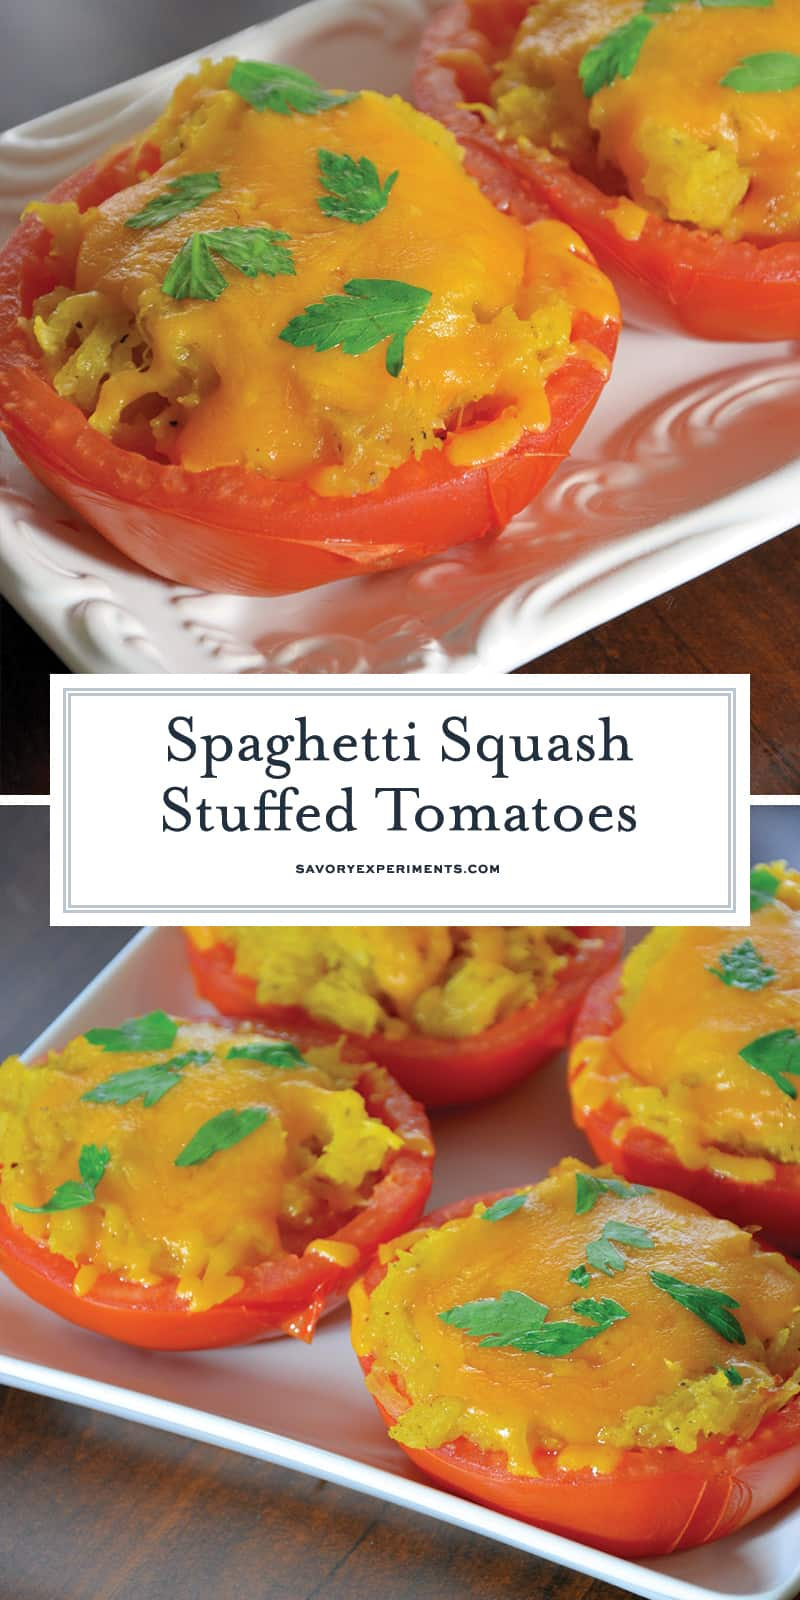 Spaghetti Squash Stuffed Tomatoes are juicy hallowed out tomatoes filled with spaghetti squash and topped with gooey cheddar cheese. The perfect low carb side dish! #lowcarbsidedish #tomatorecipes #spaghettisquashrecipes www.savoryexperiments.com